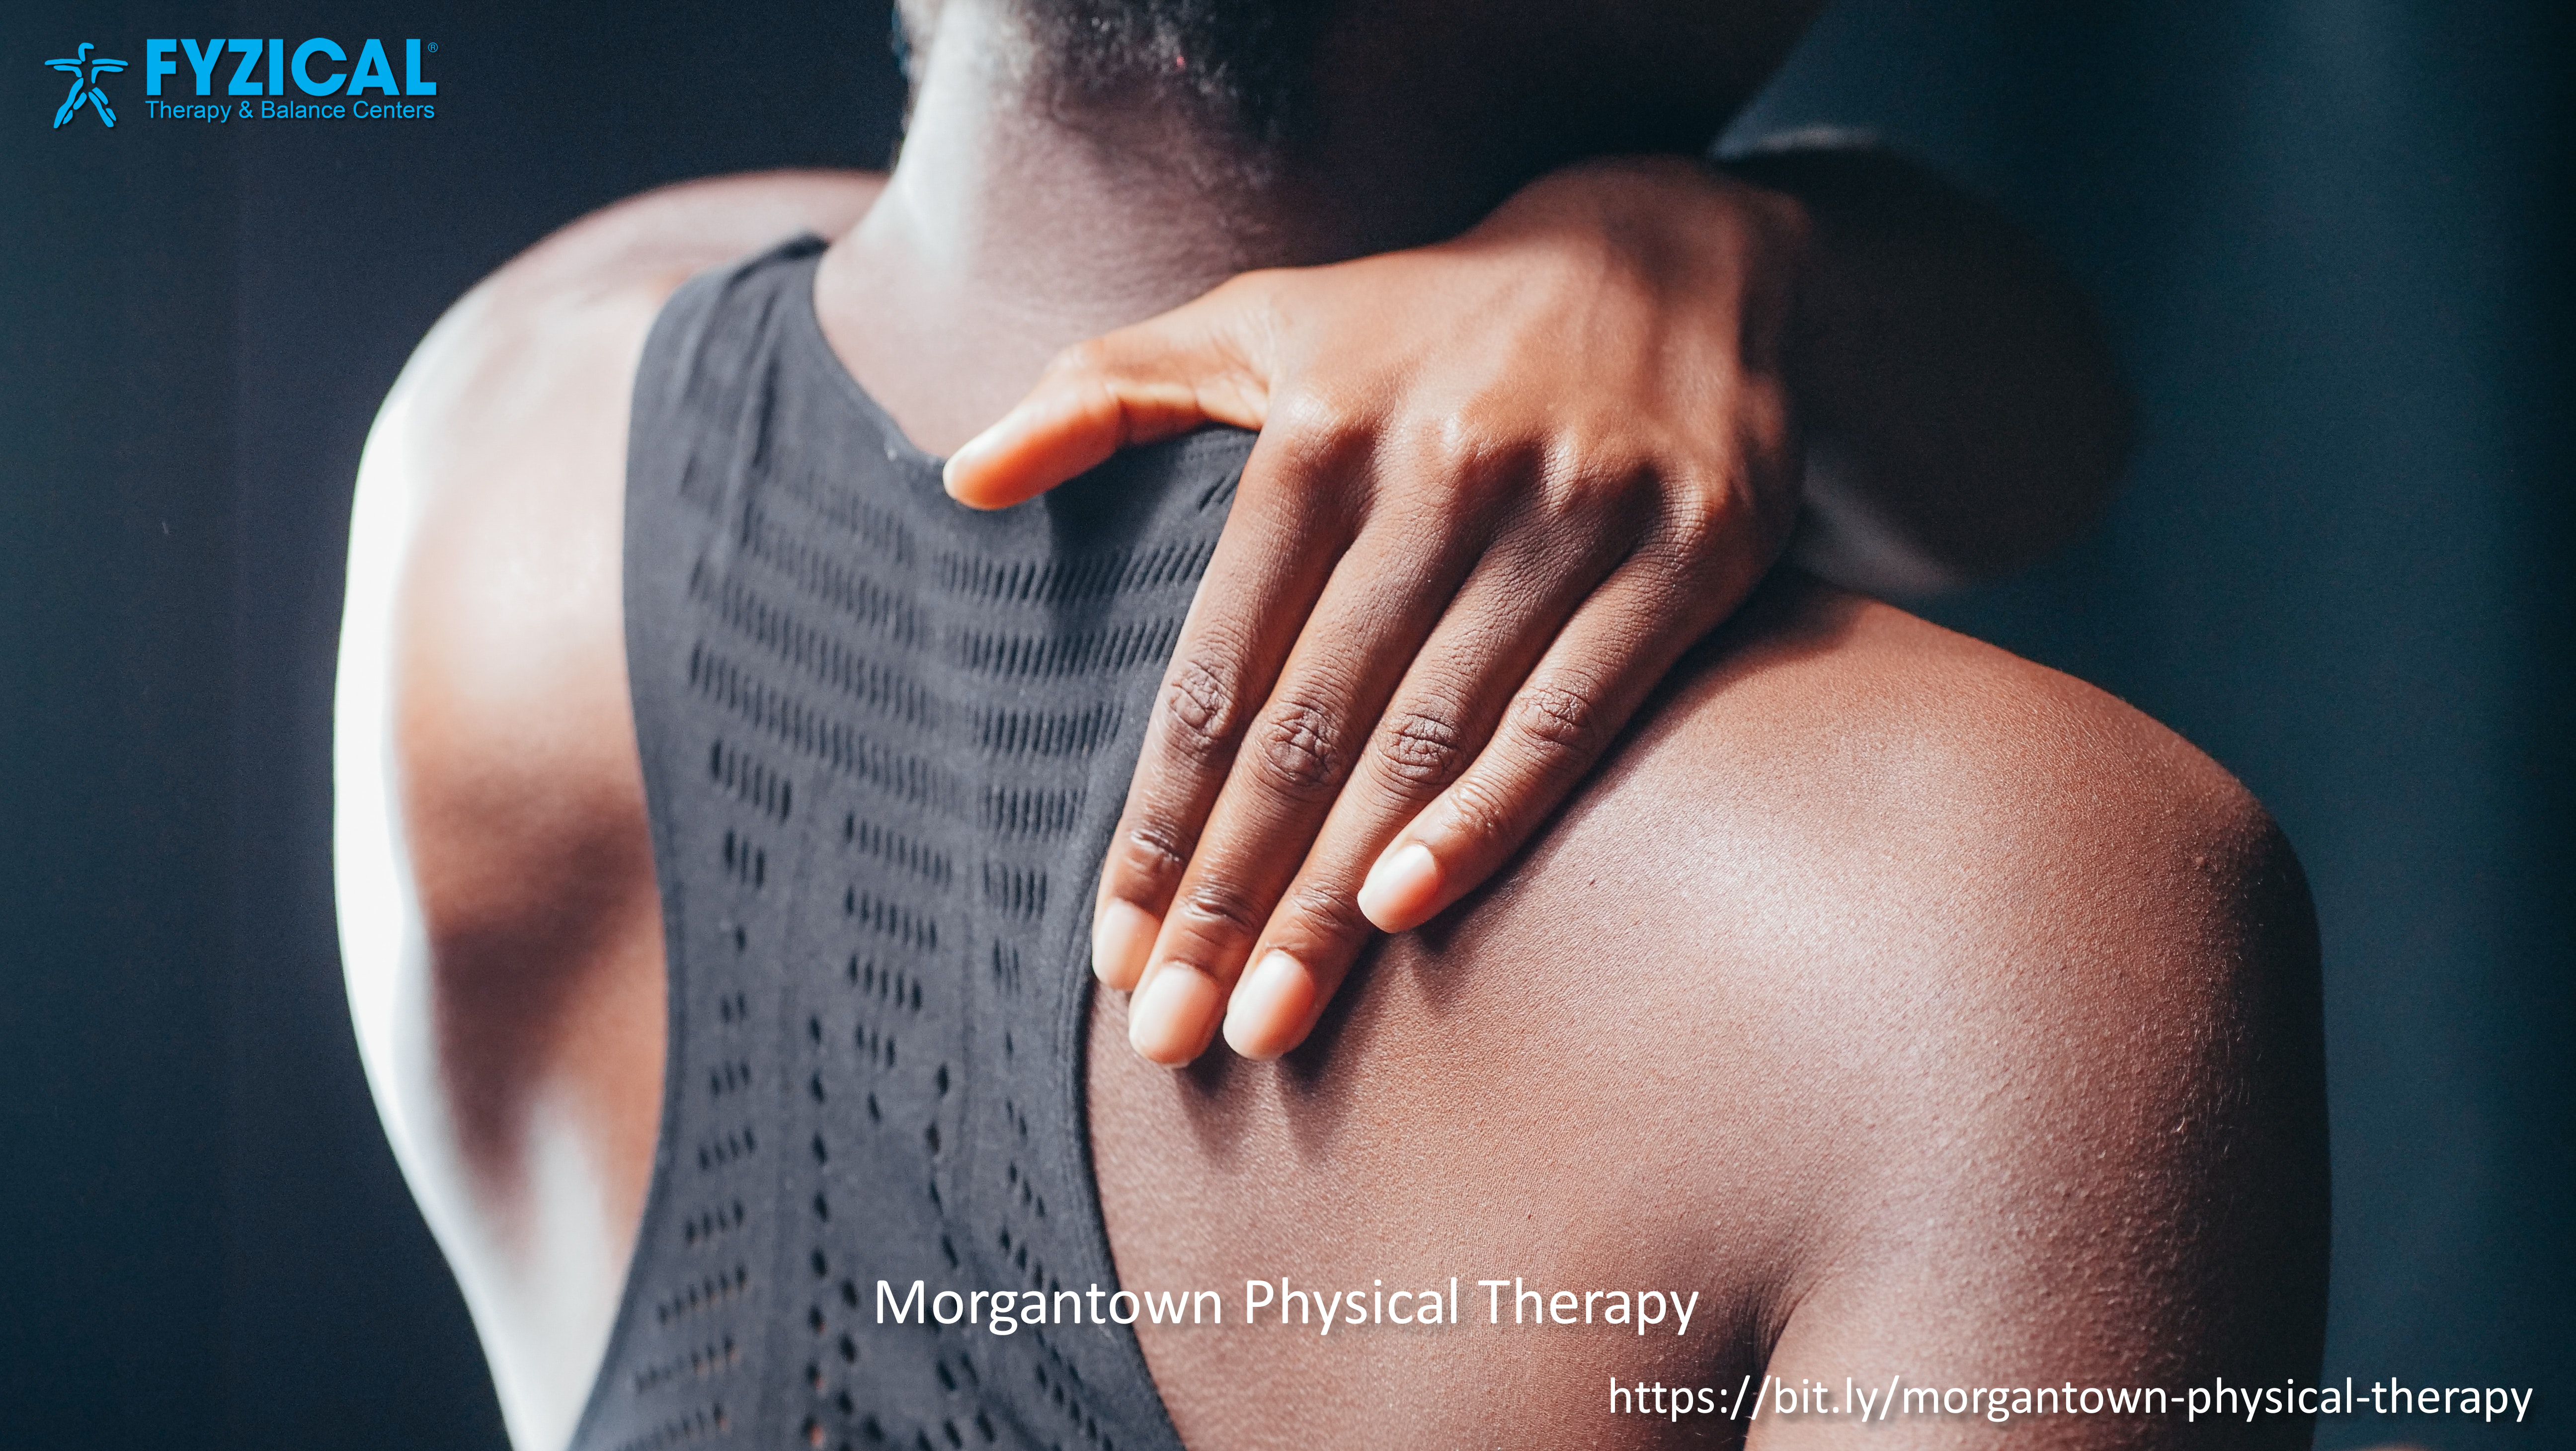 FYZICAL Therapy and Balance Centers Launches Orthopedic Rehabilitation Morgantown